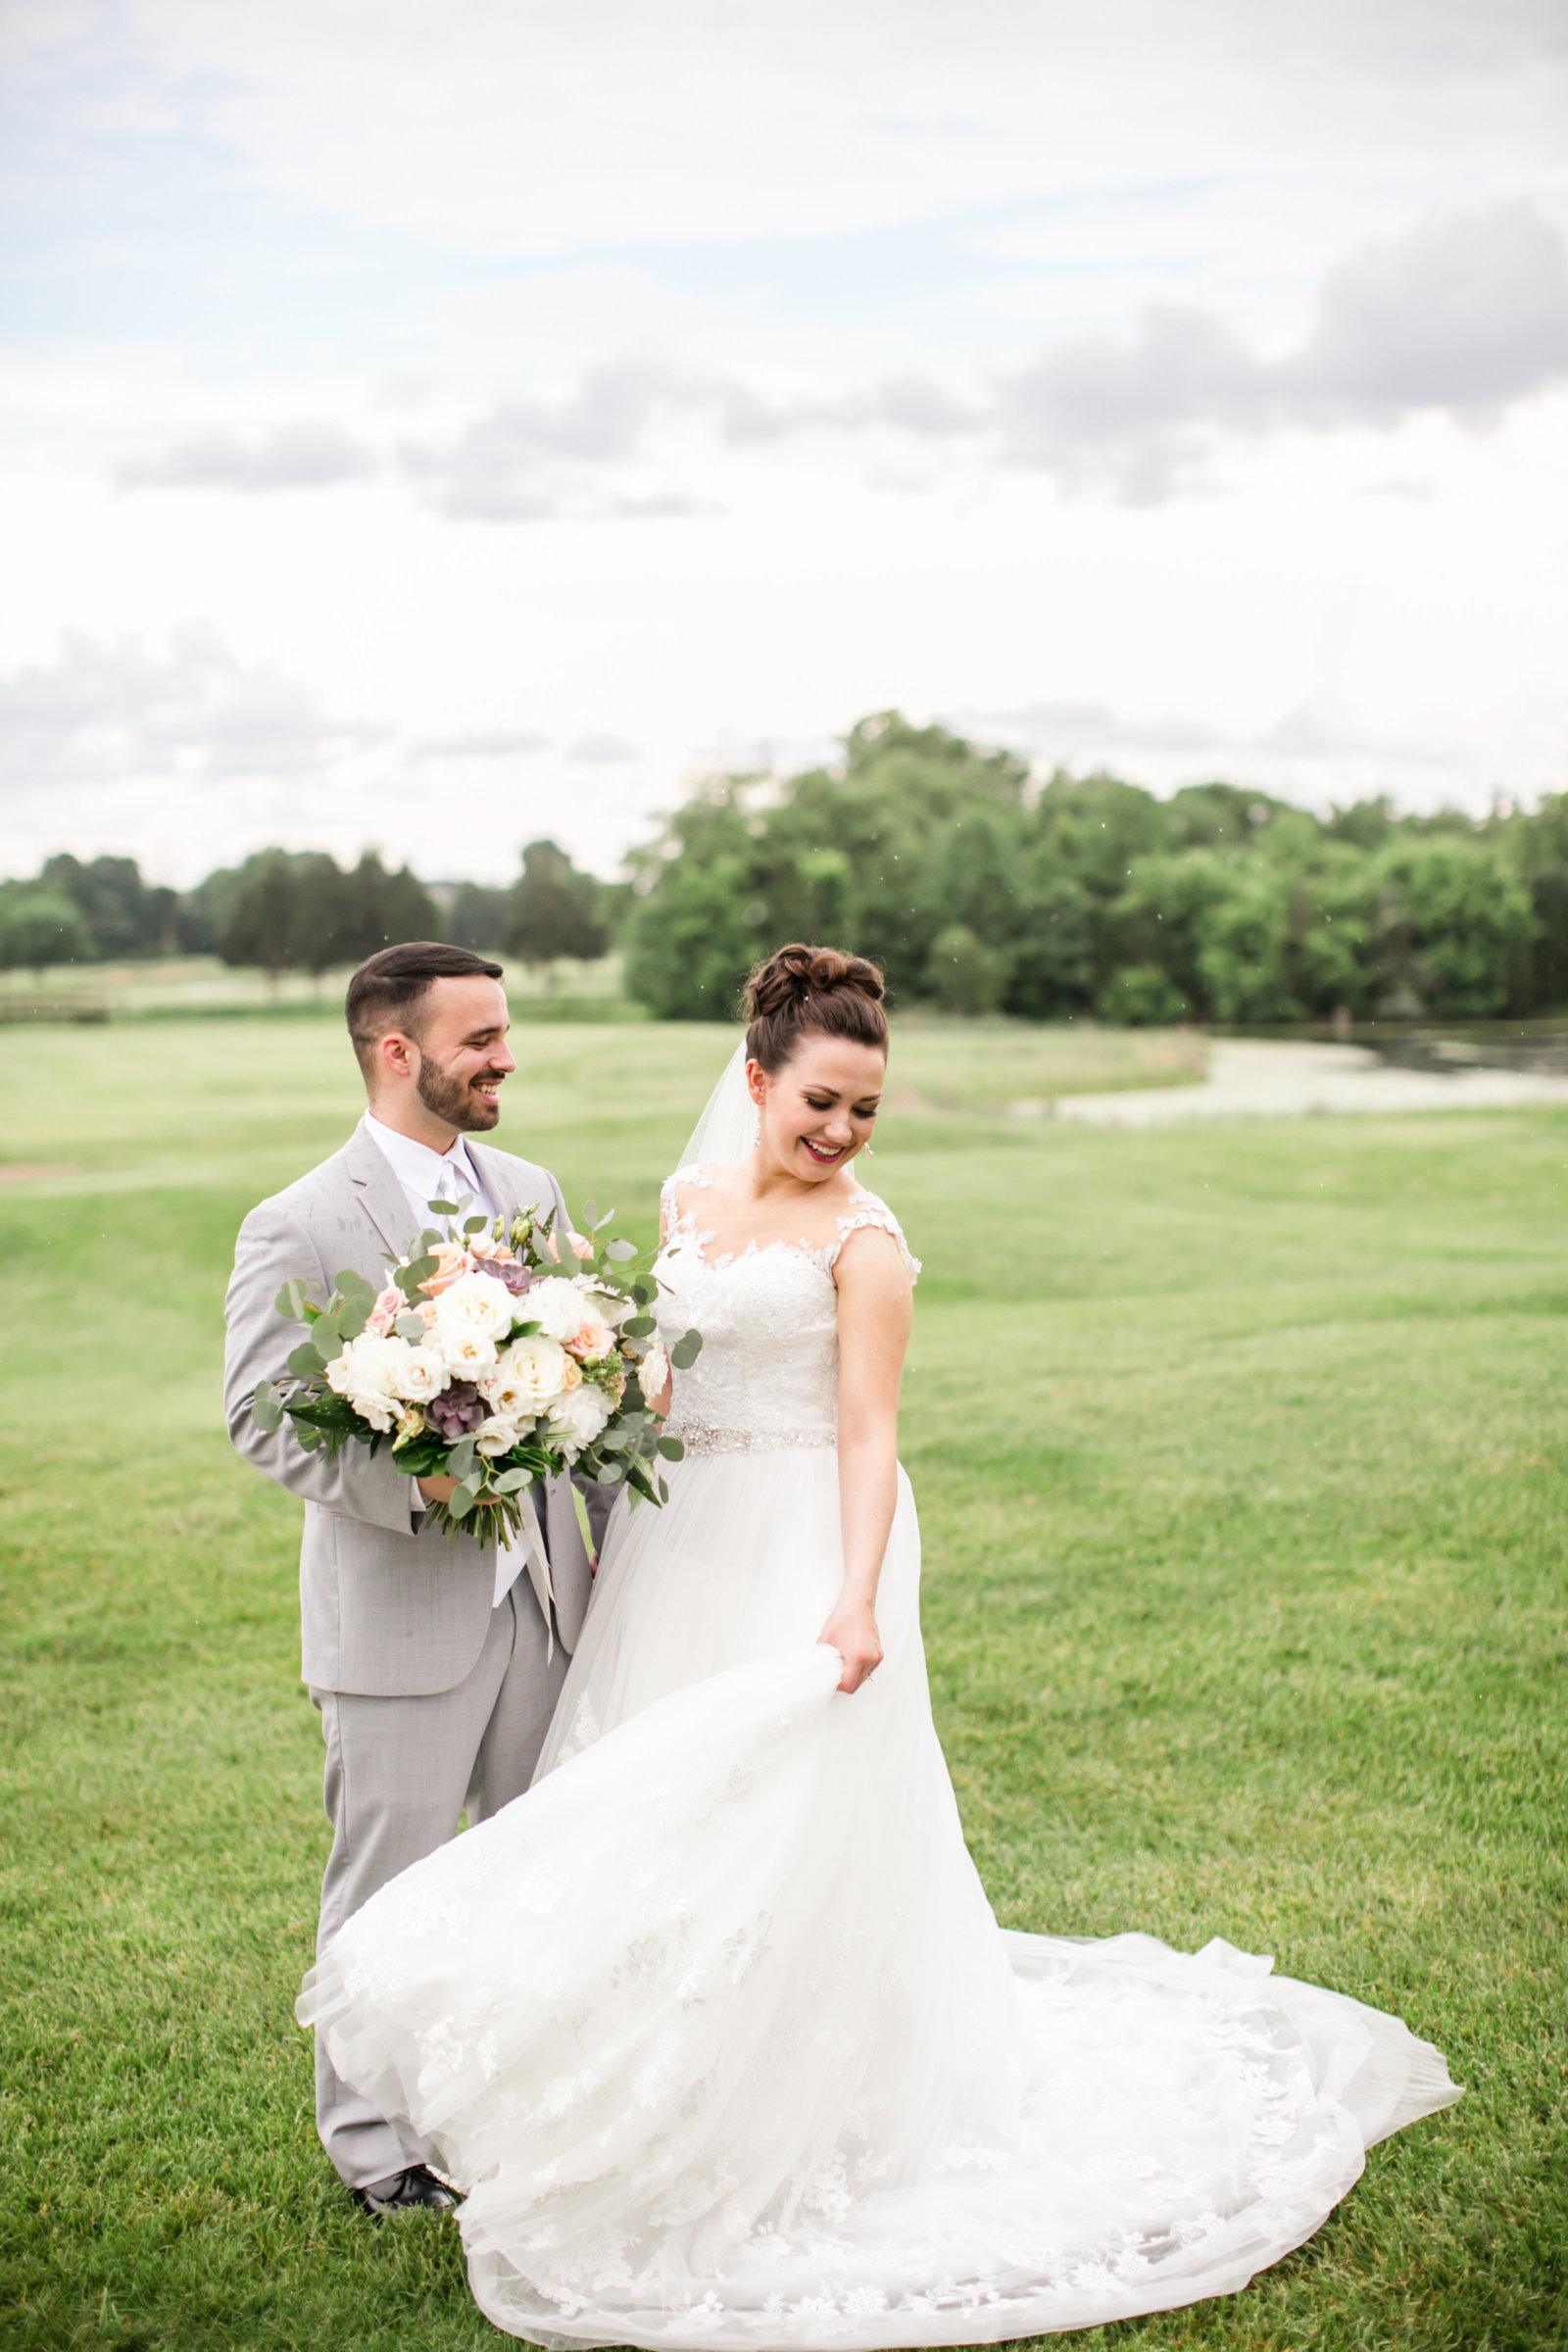 Bristow_Manor_Golf_Club_Wedding_Photographer_Anderson312 copy